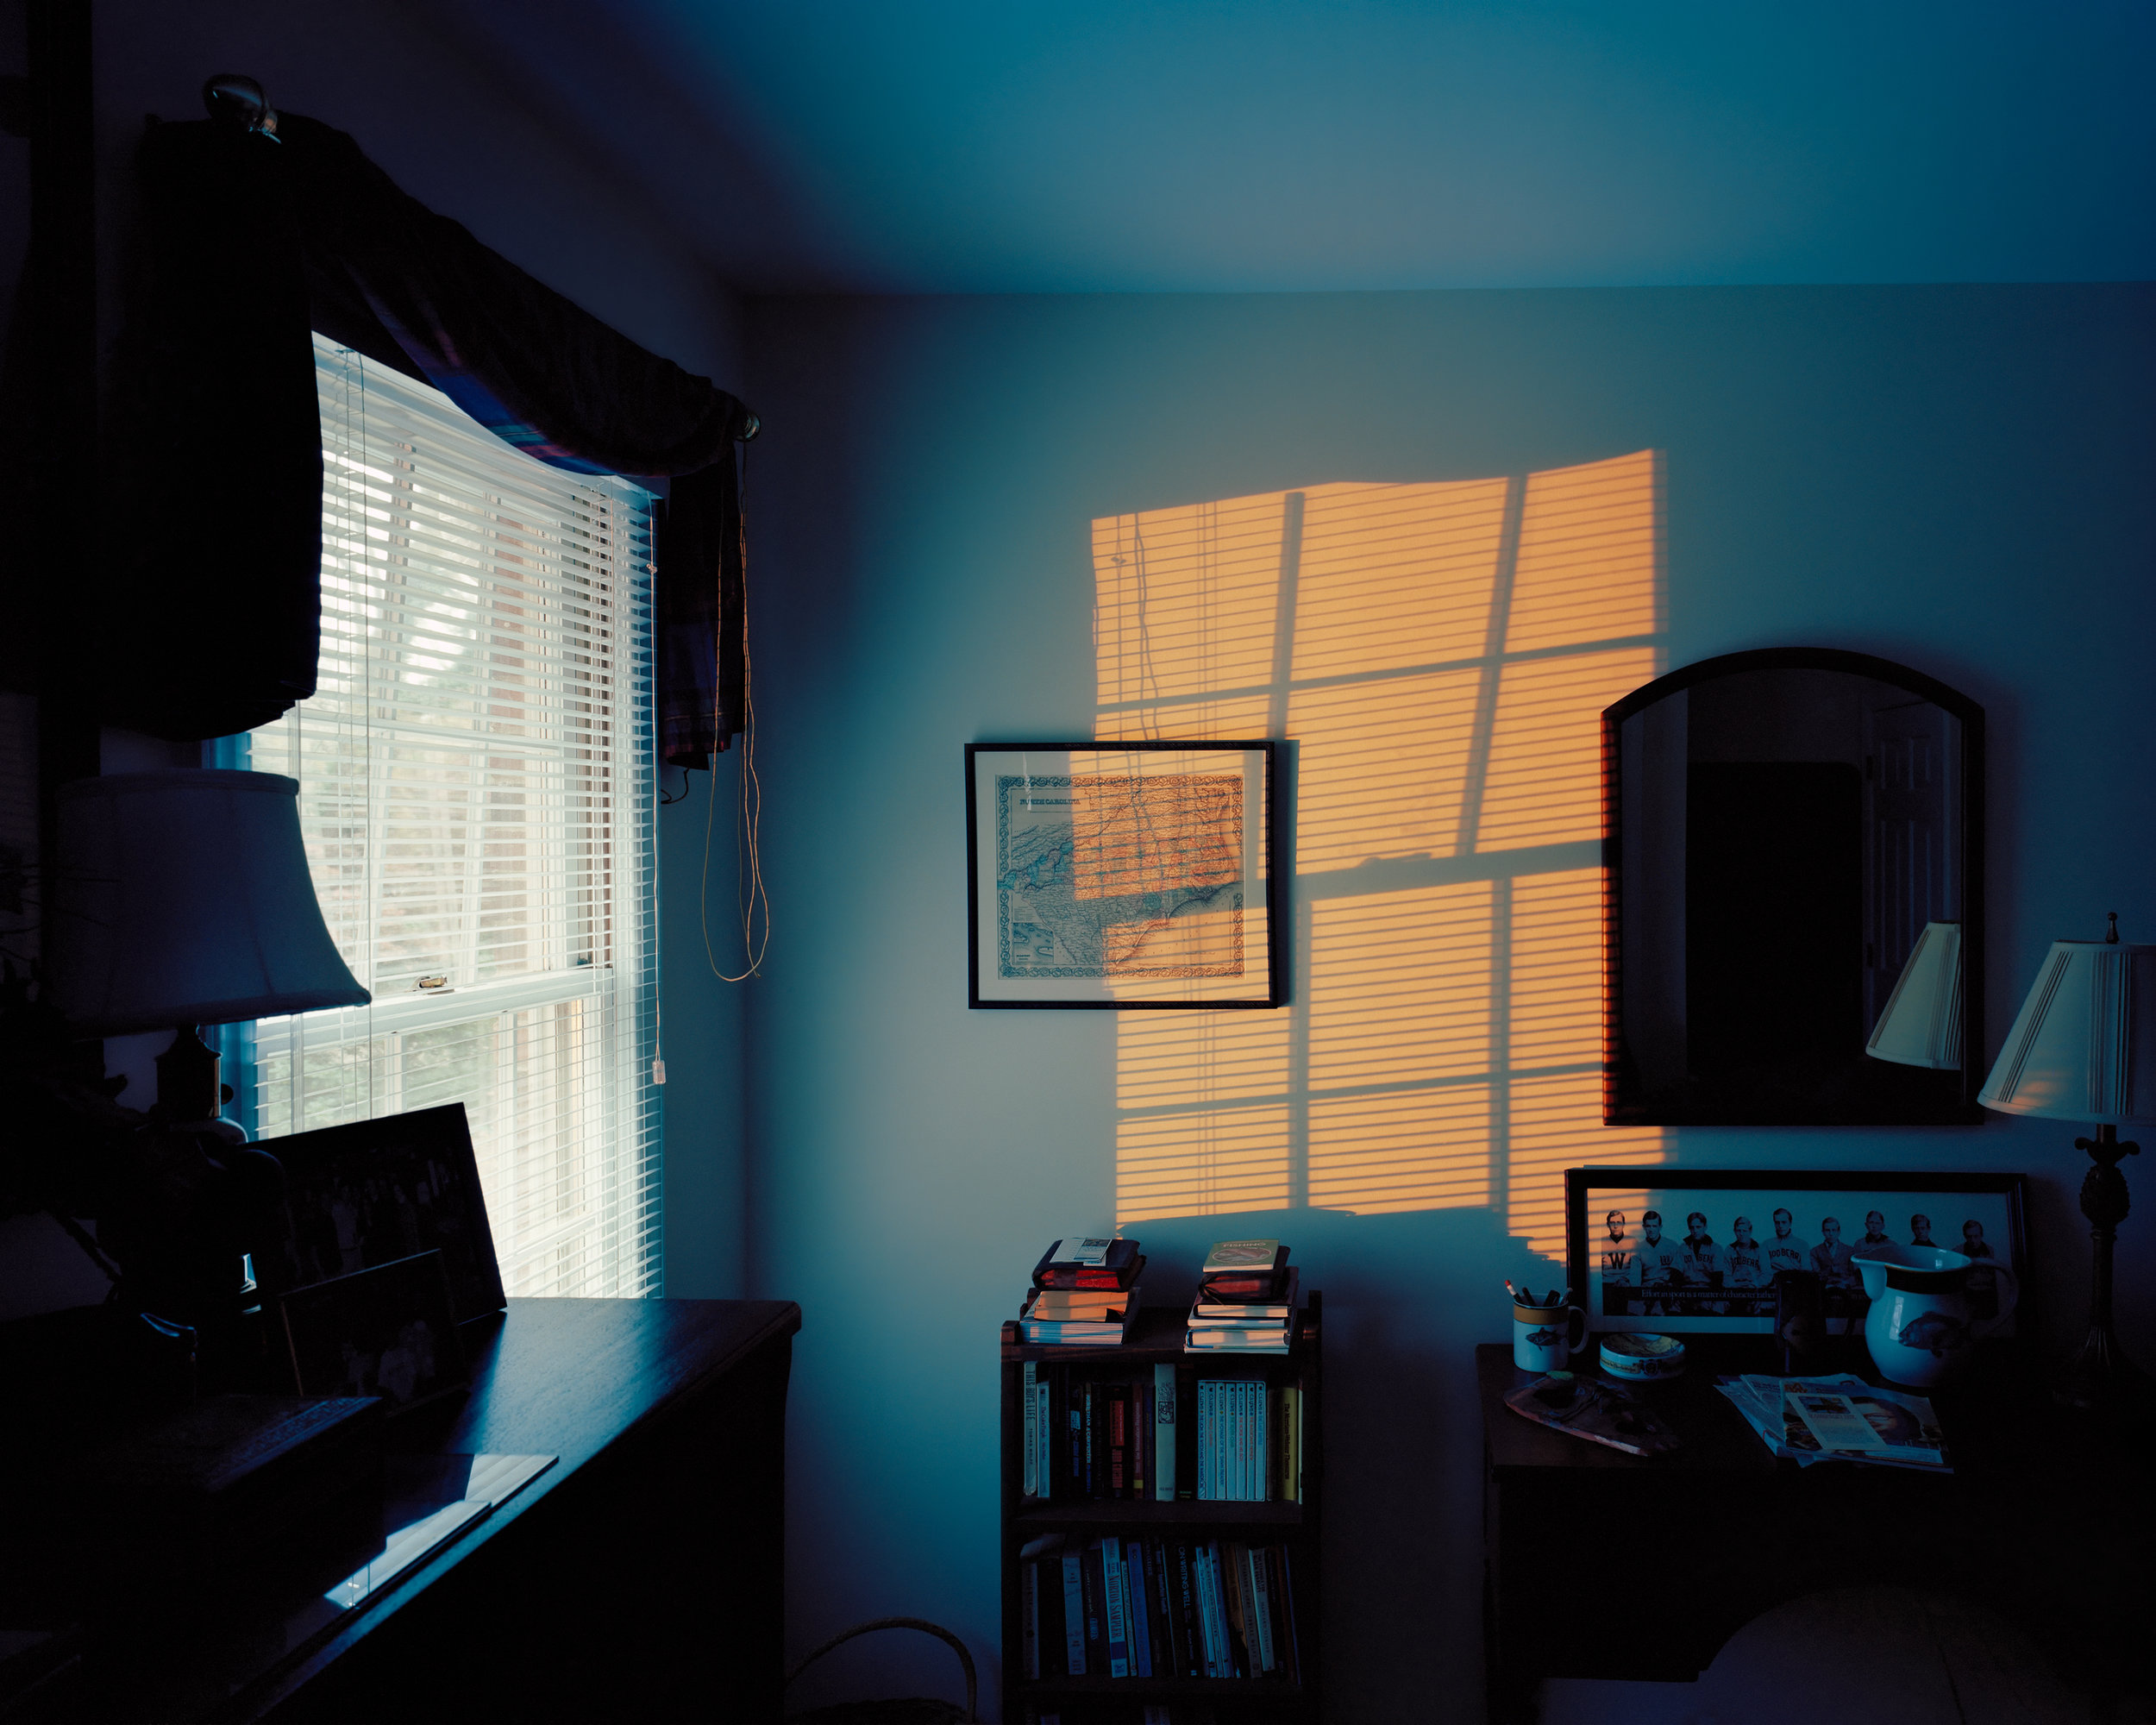 McNAIR EVANS  Floodlight,  2009 from the series  Confessions for a Son  Archival Pigment Print Available sizes 20 x 25 inches, ed. 5 + 1AP 32 x 40 inches, ed. 5 + 1AP